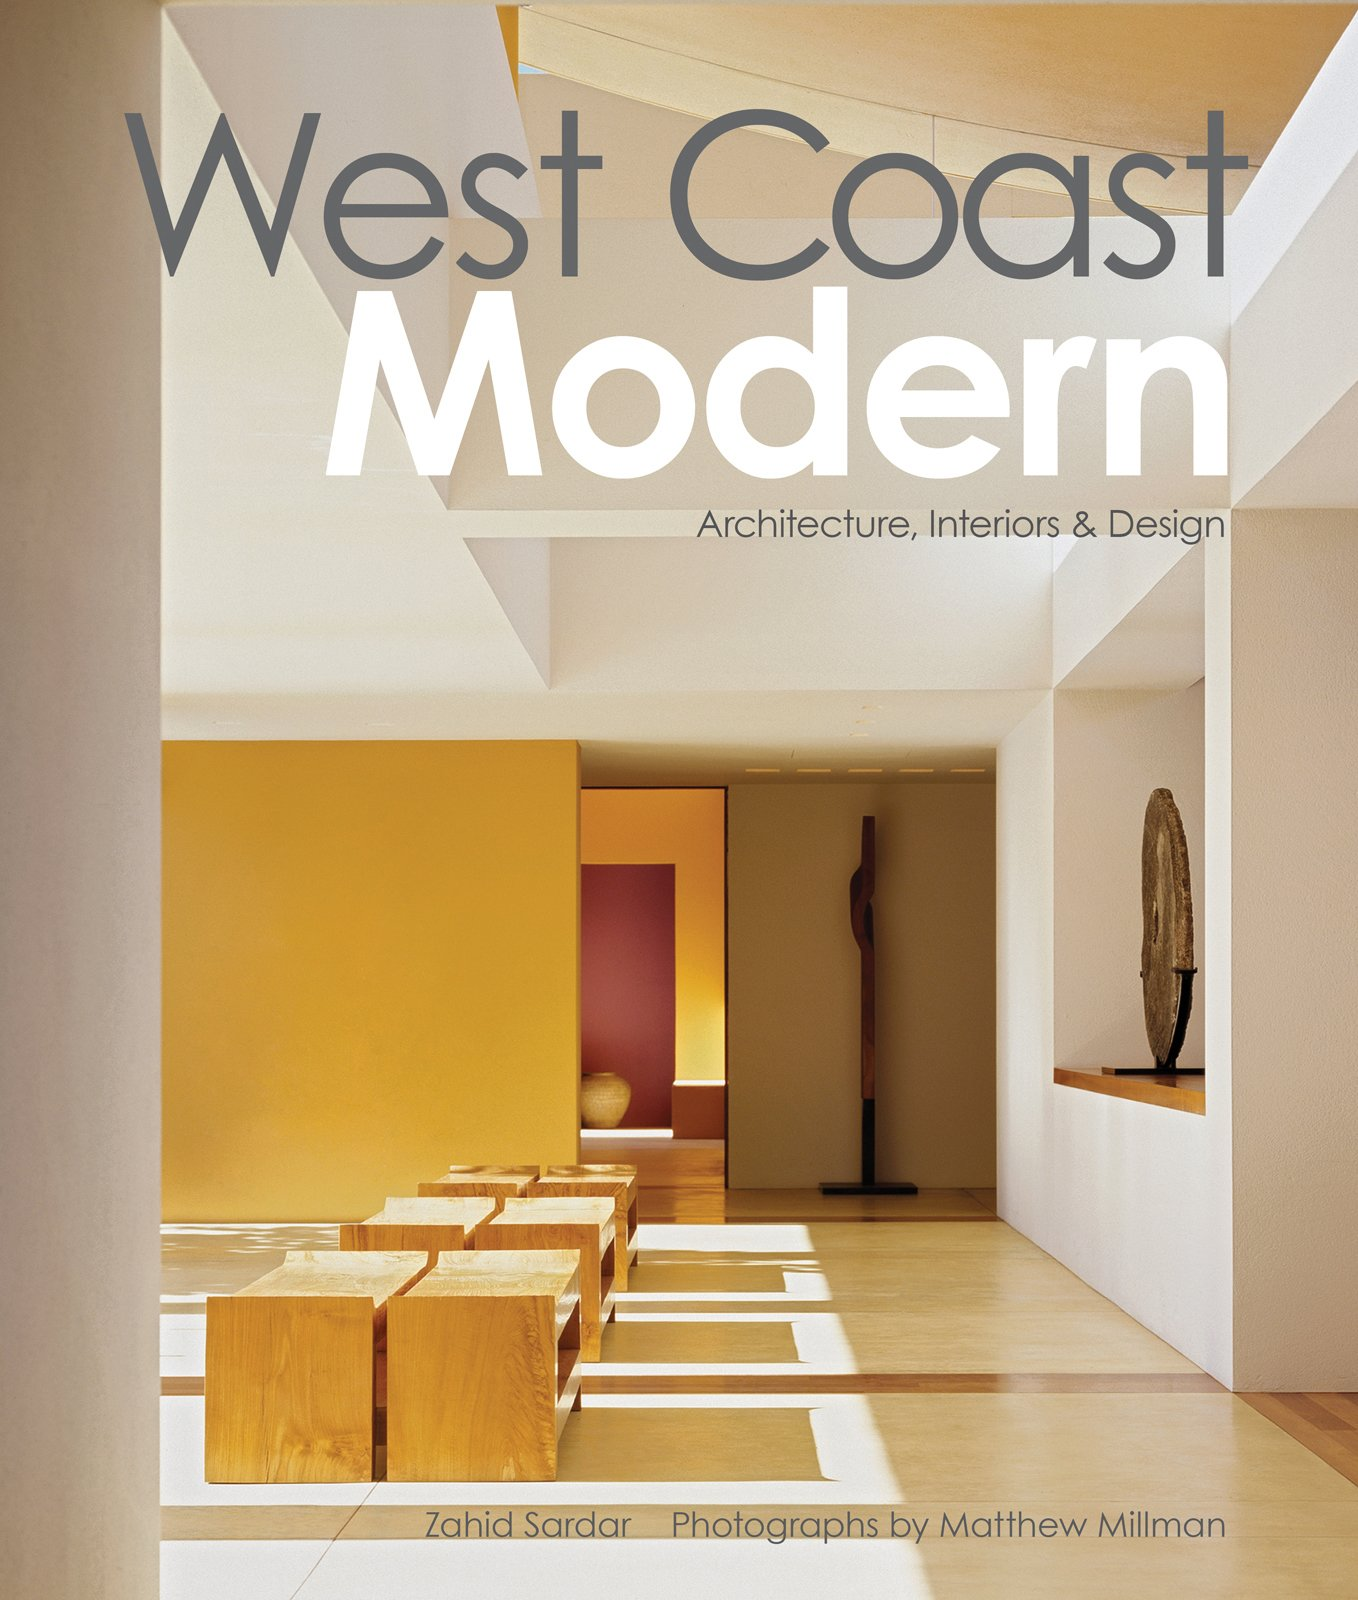 West Coast Modern\' by Zahid Sardar - Dwell